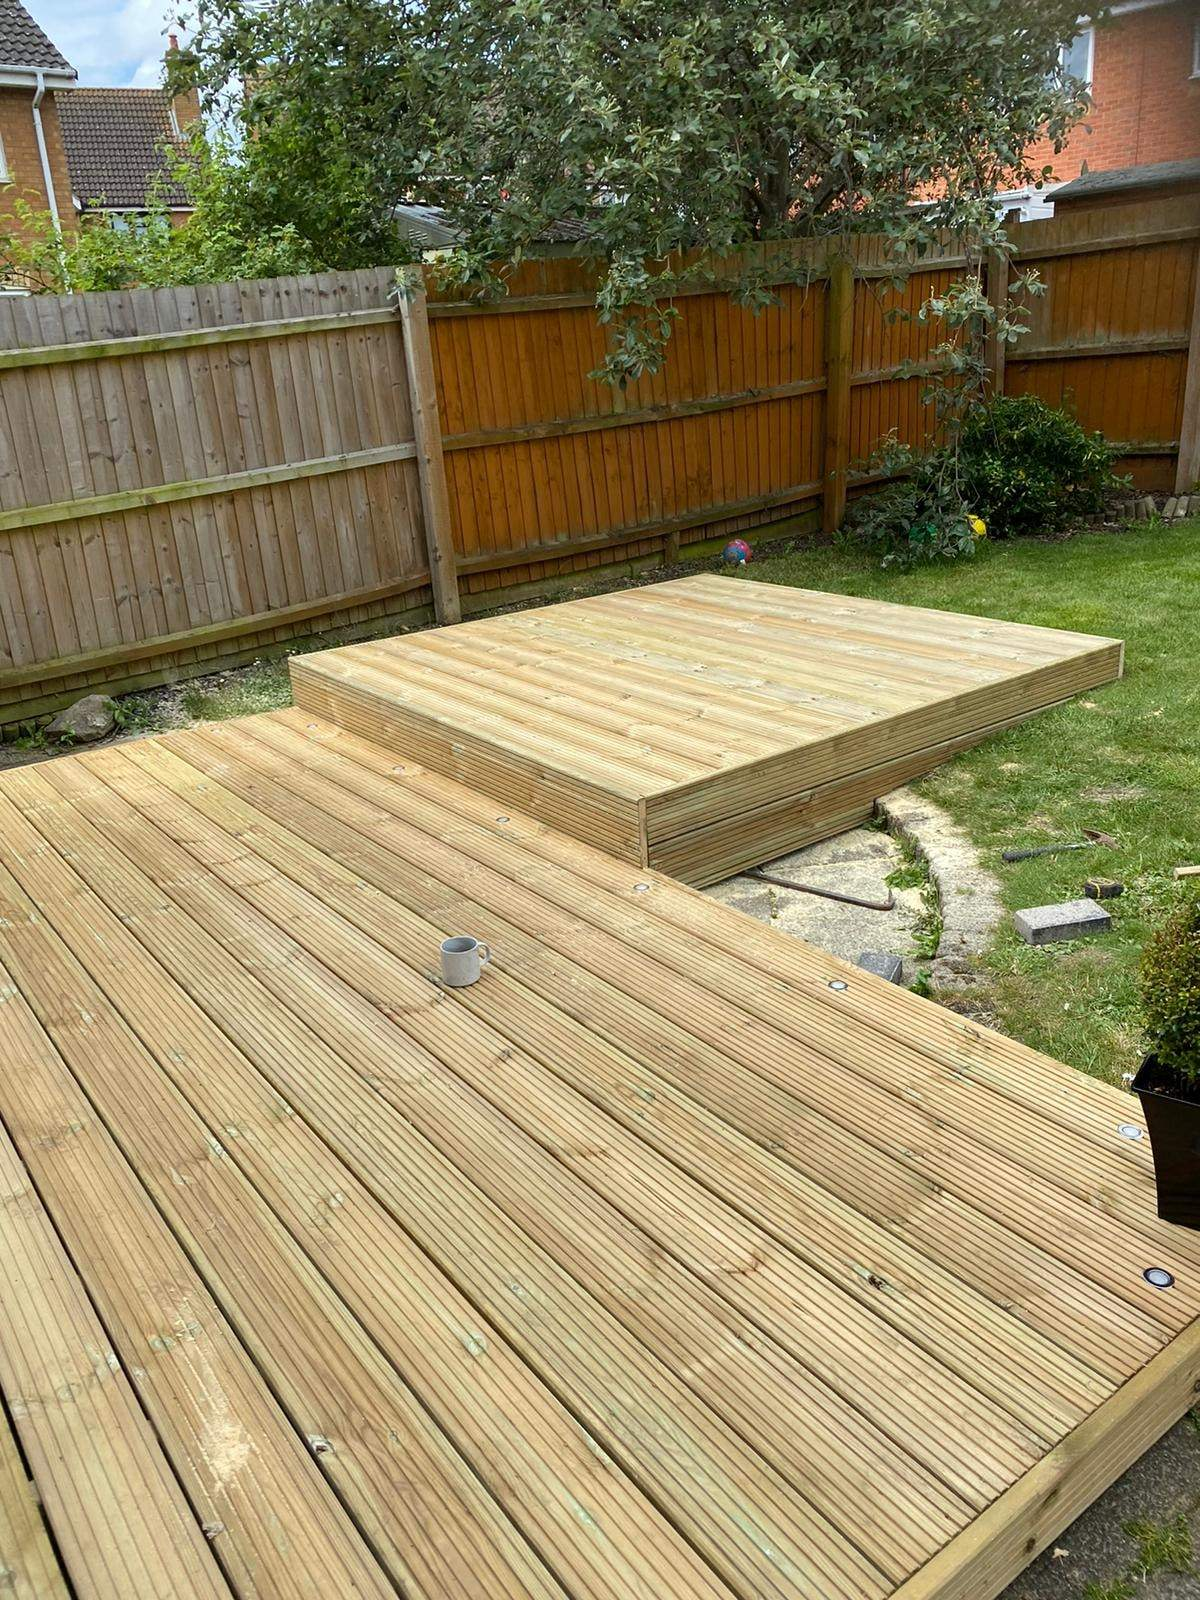 Decking completed in Park Farm